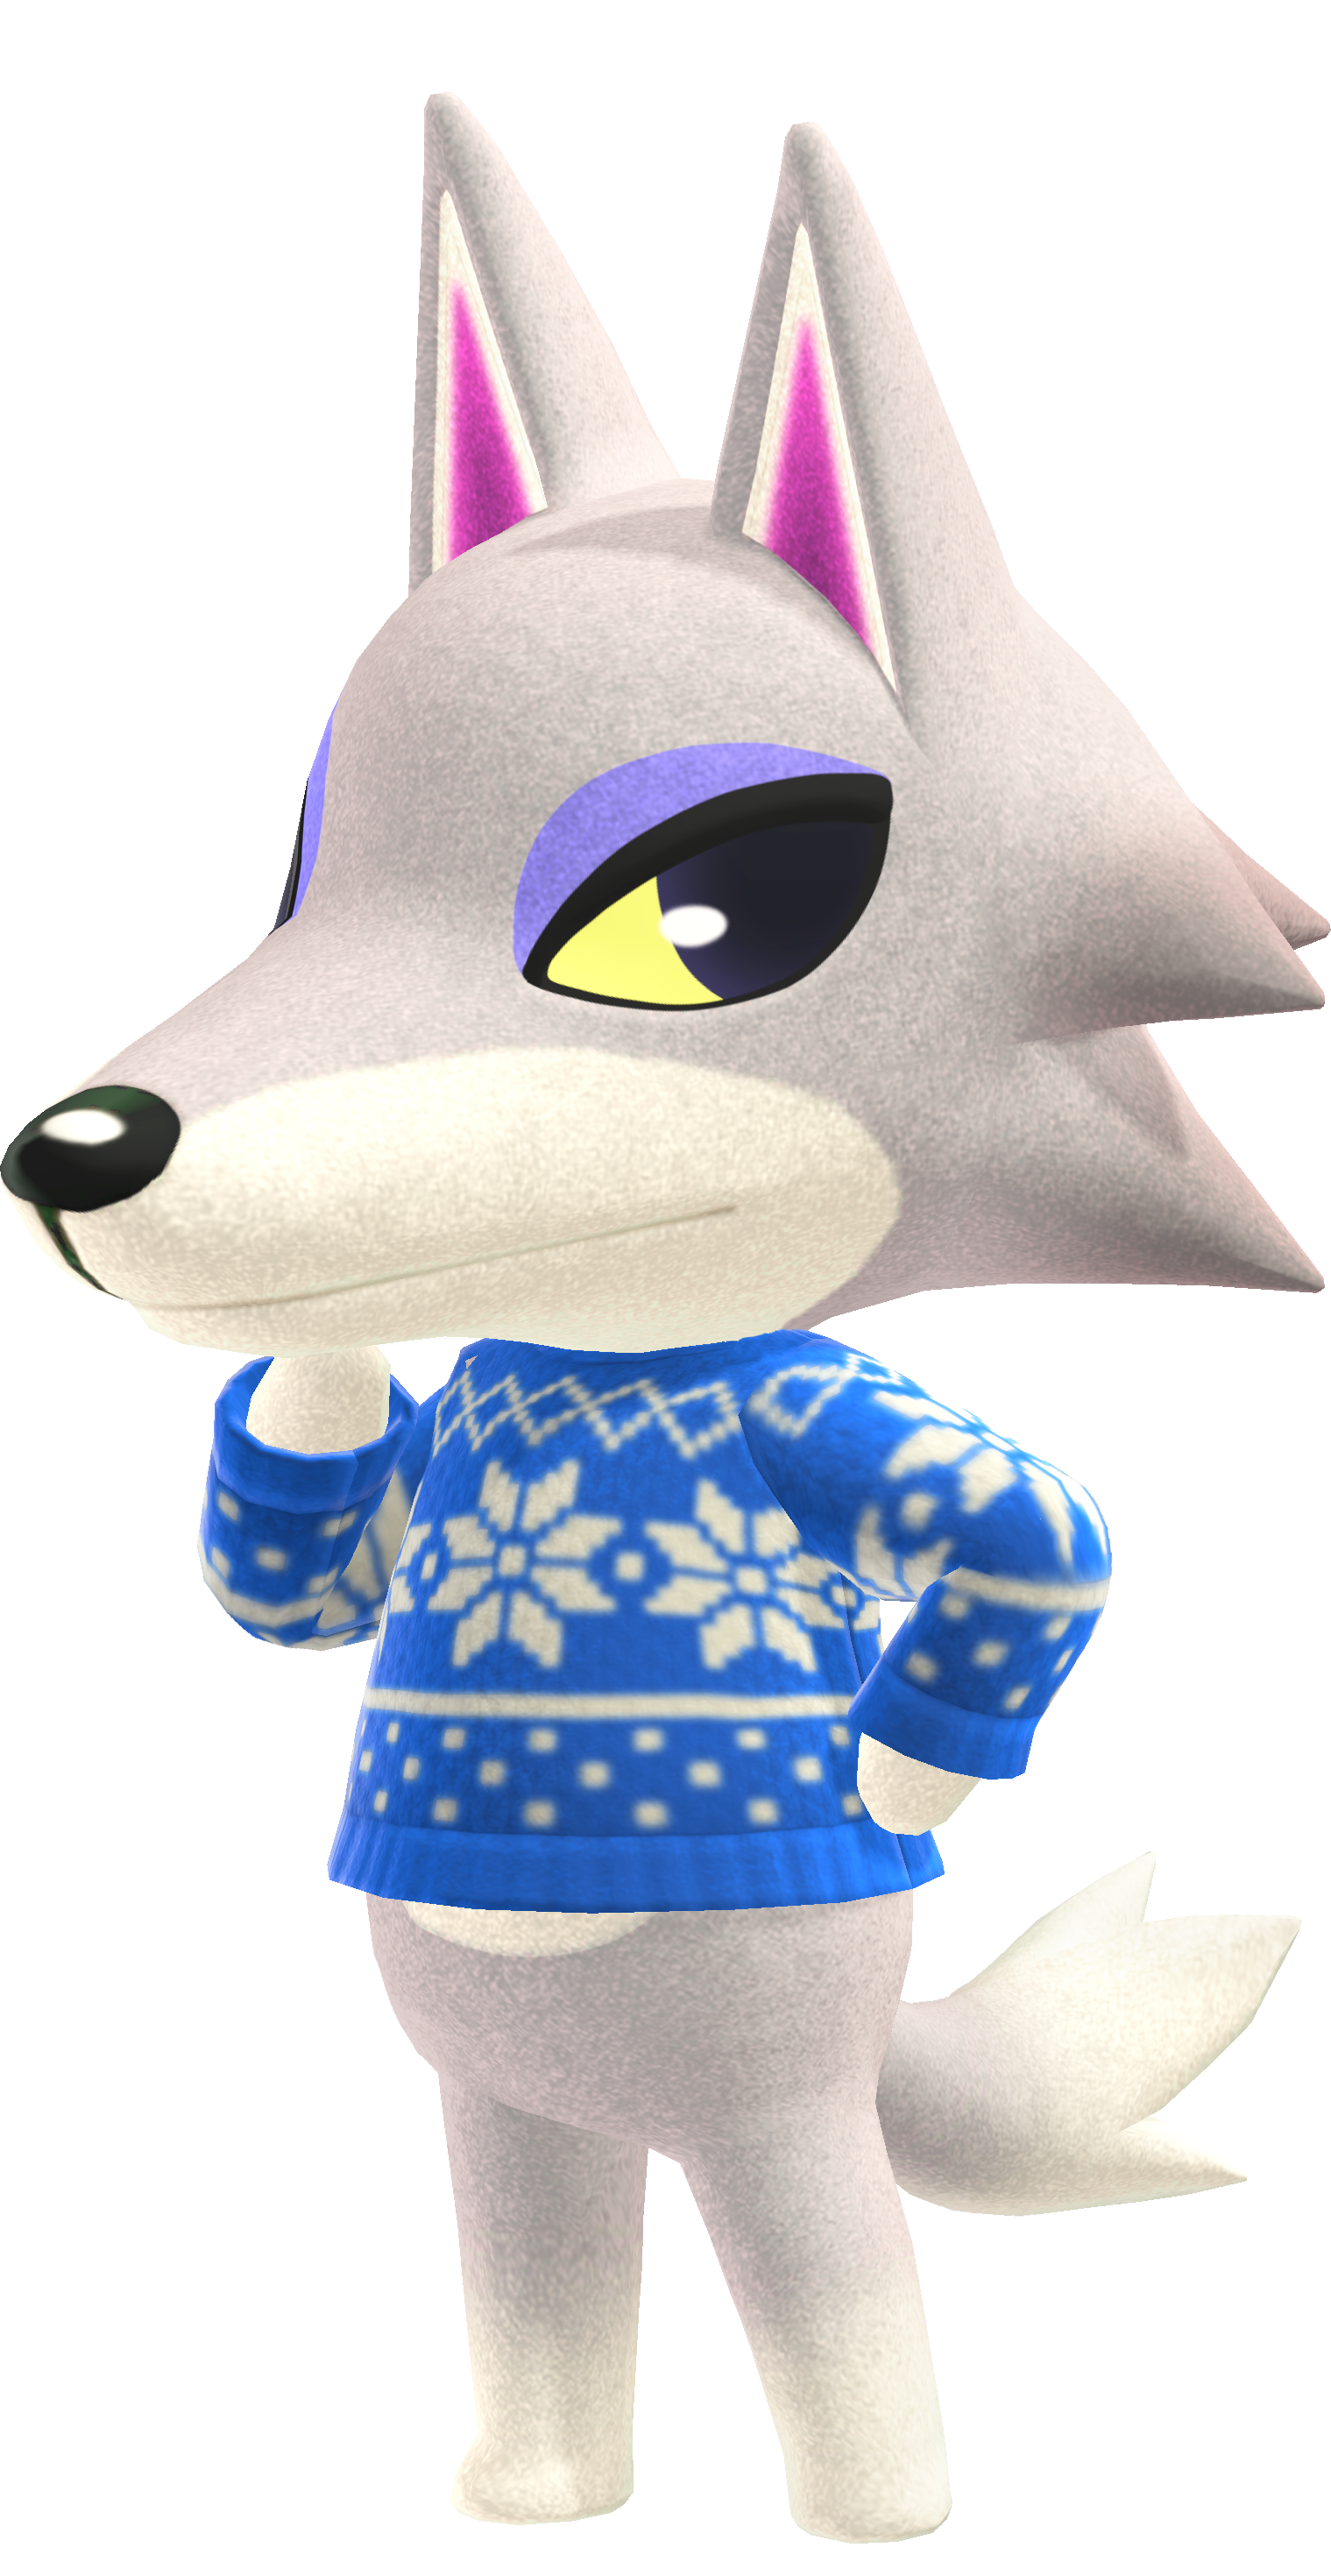 Fang (cranky) in 2020 Animal crossing characters, Animal